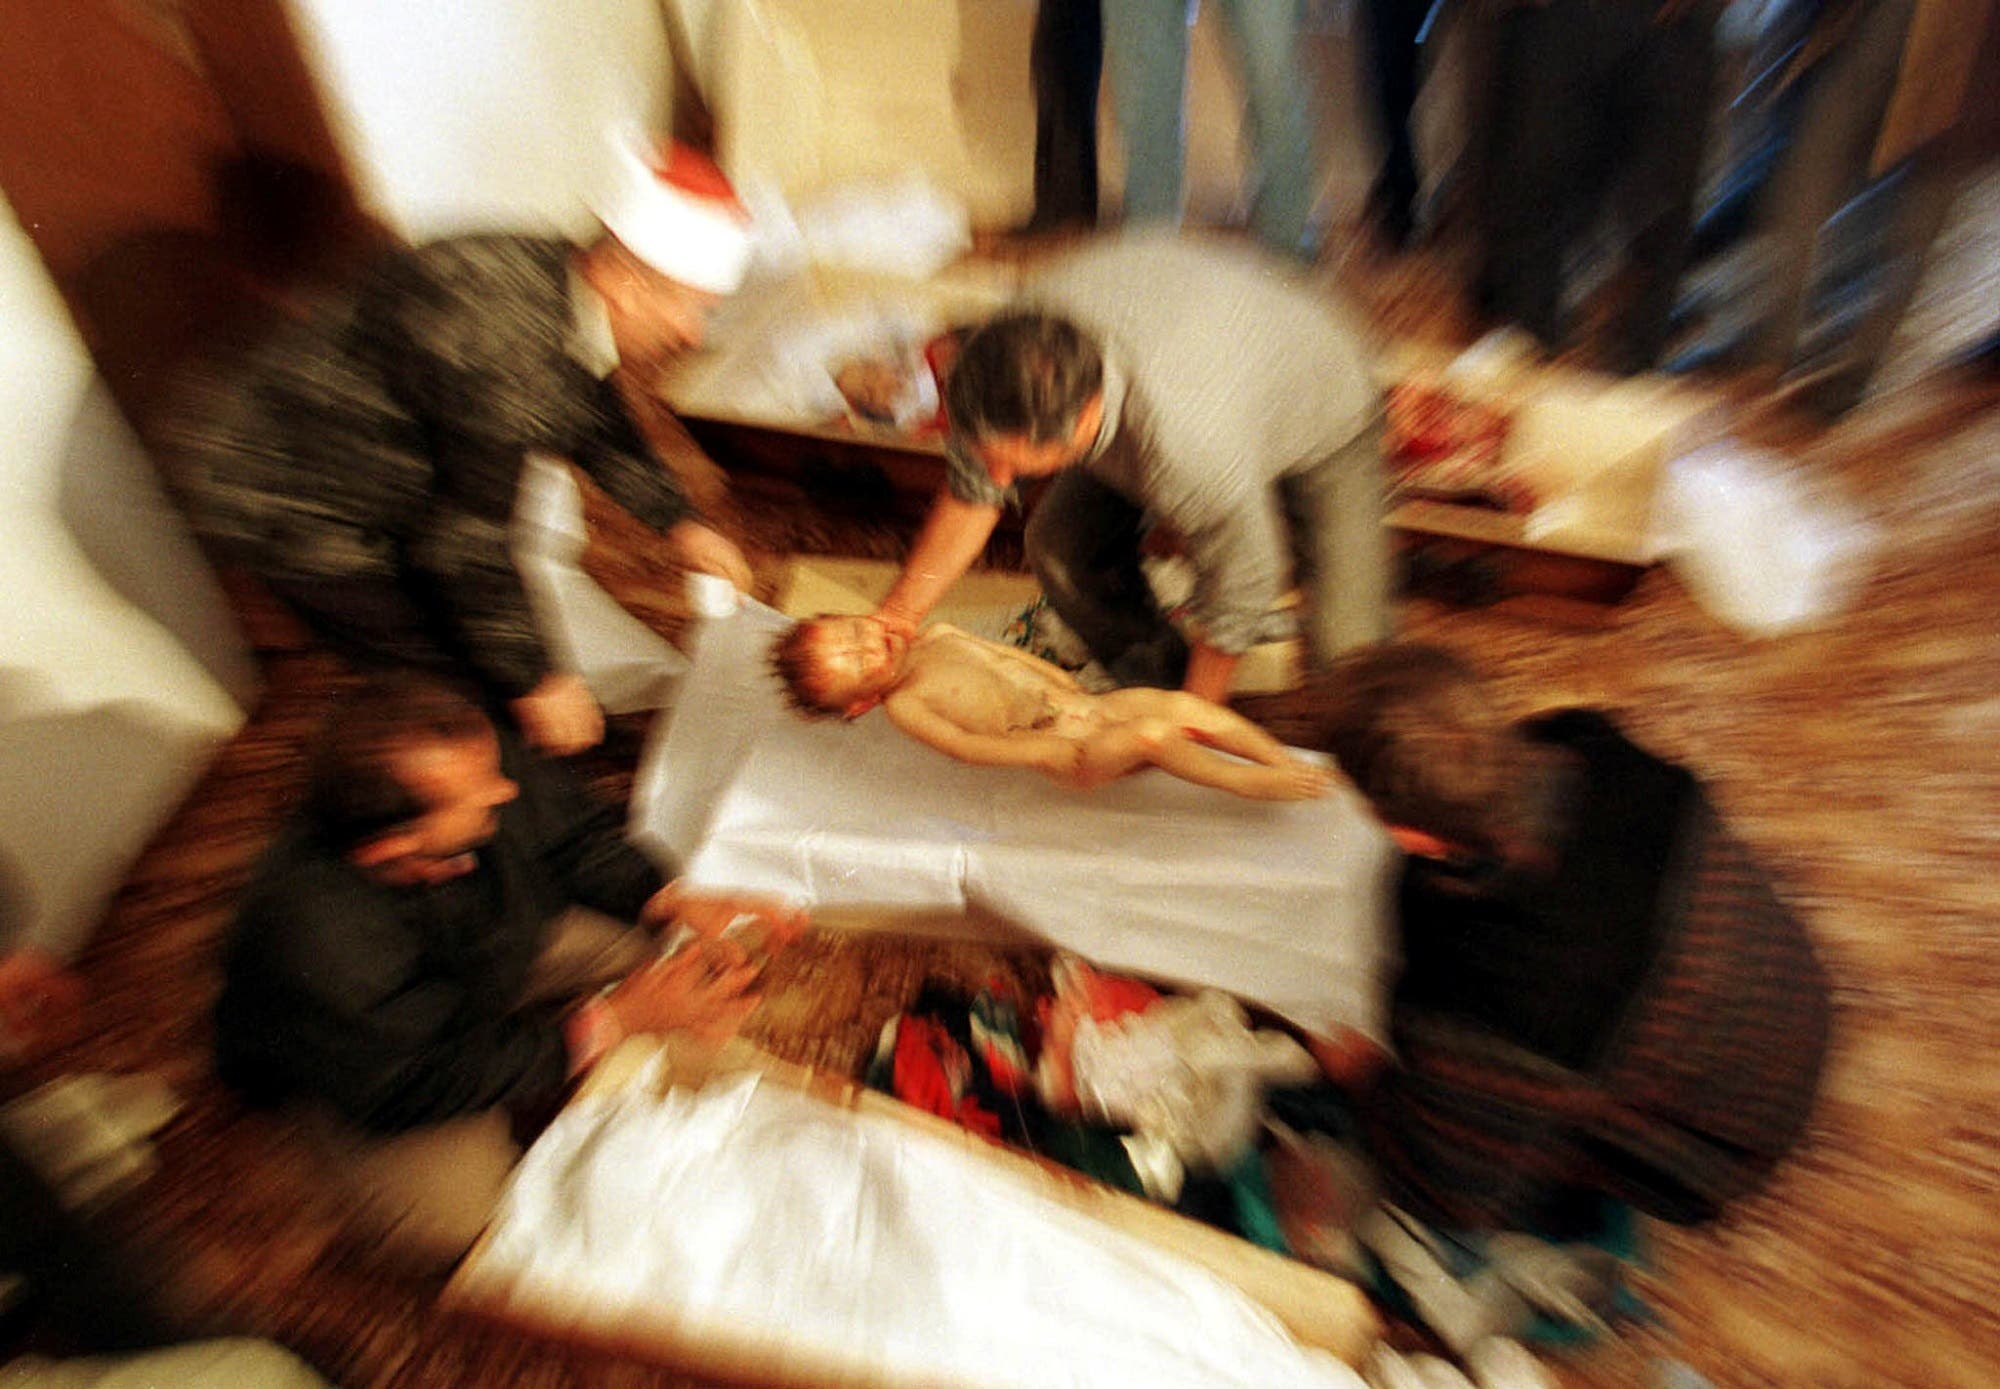 An ethnic Albanian man places the body of two-year-old Mozzlum Sylmetaj into a coffin next to the coffins of three other family members killed by Yugoslav army troops. (Reuters/ Yannis Behrakis)